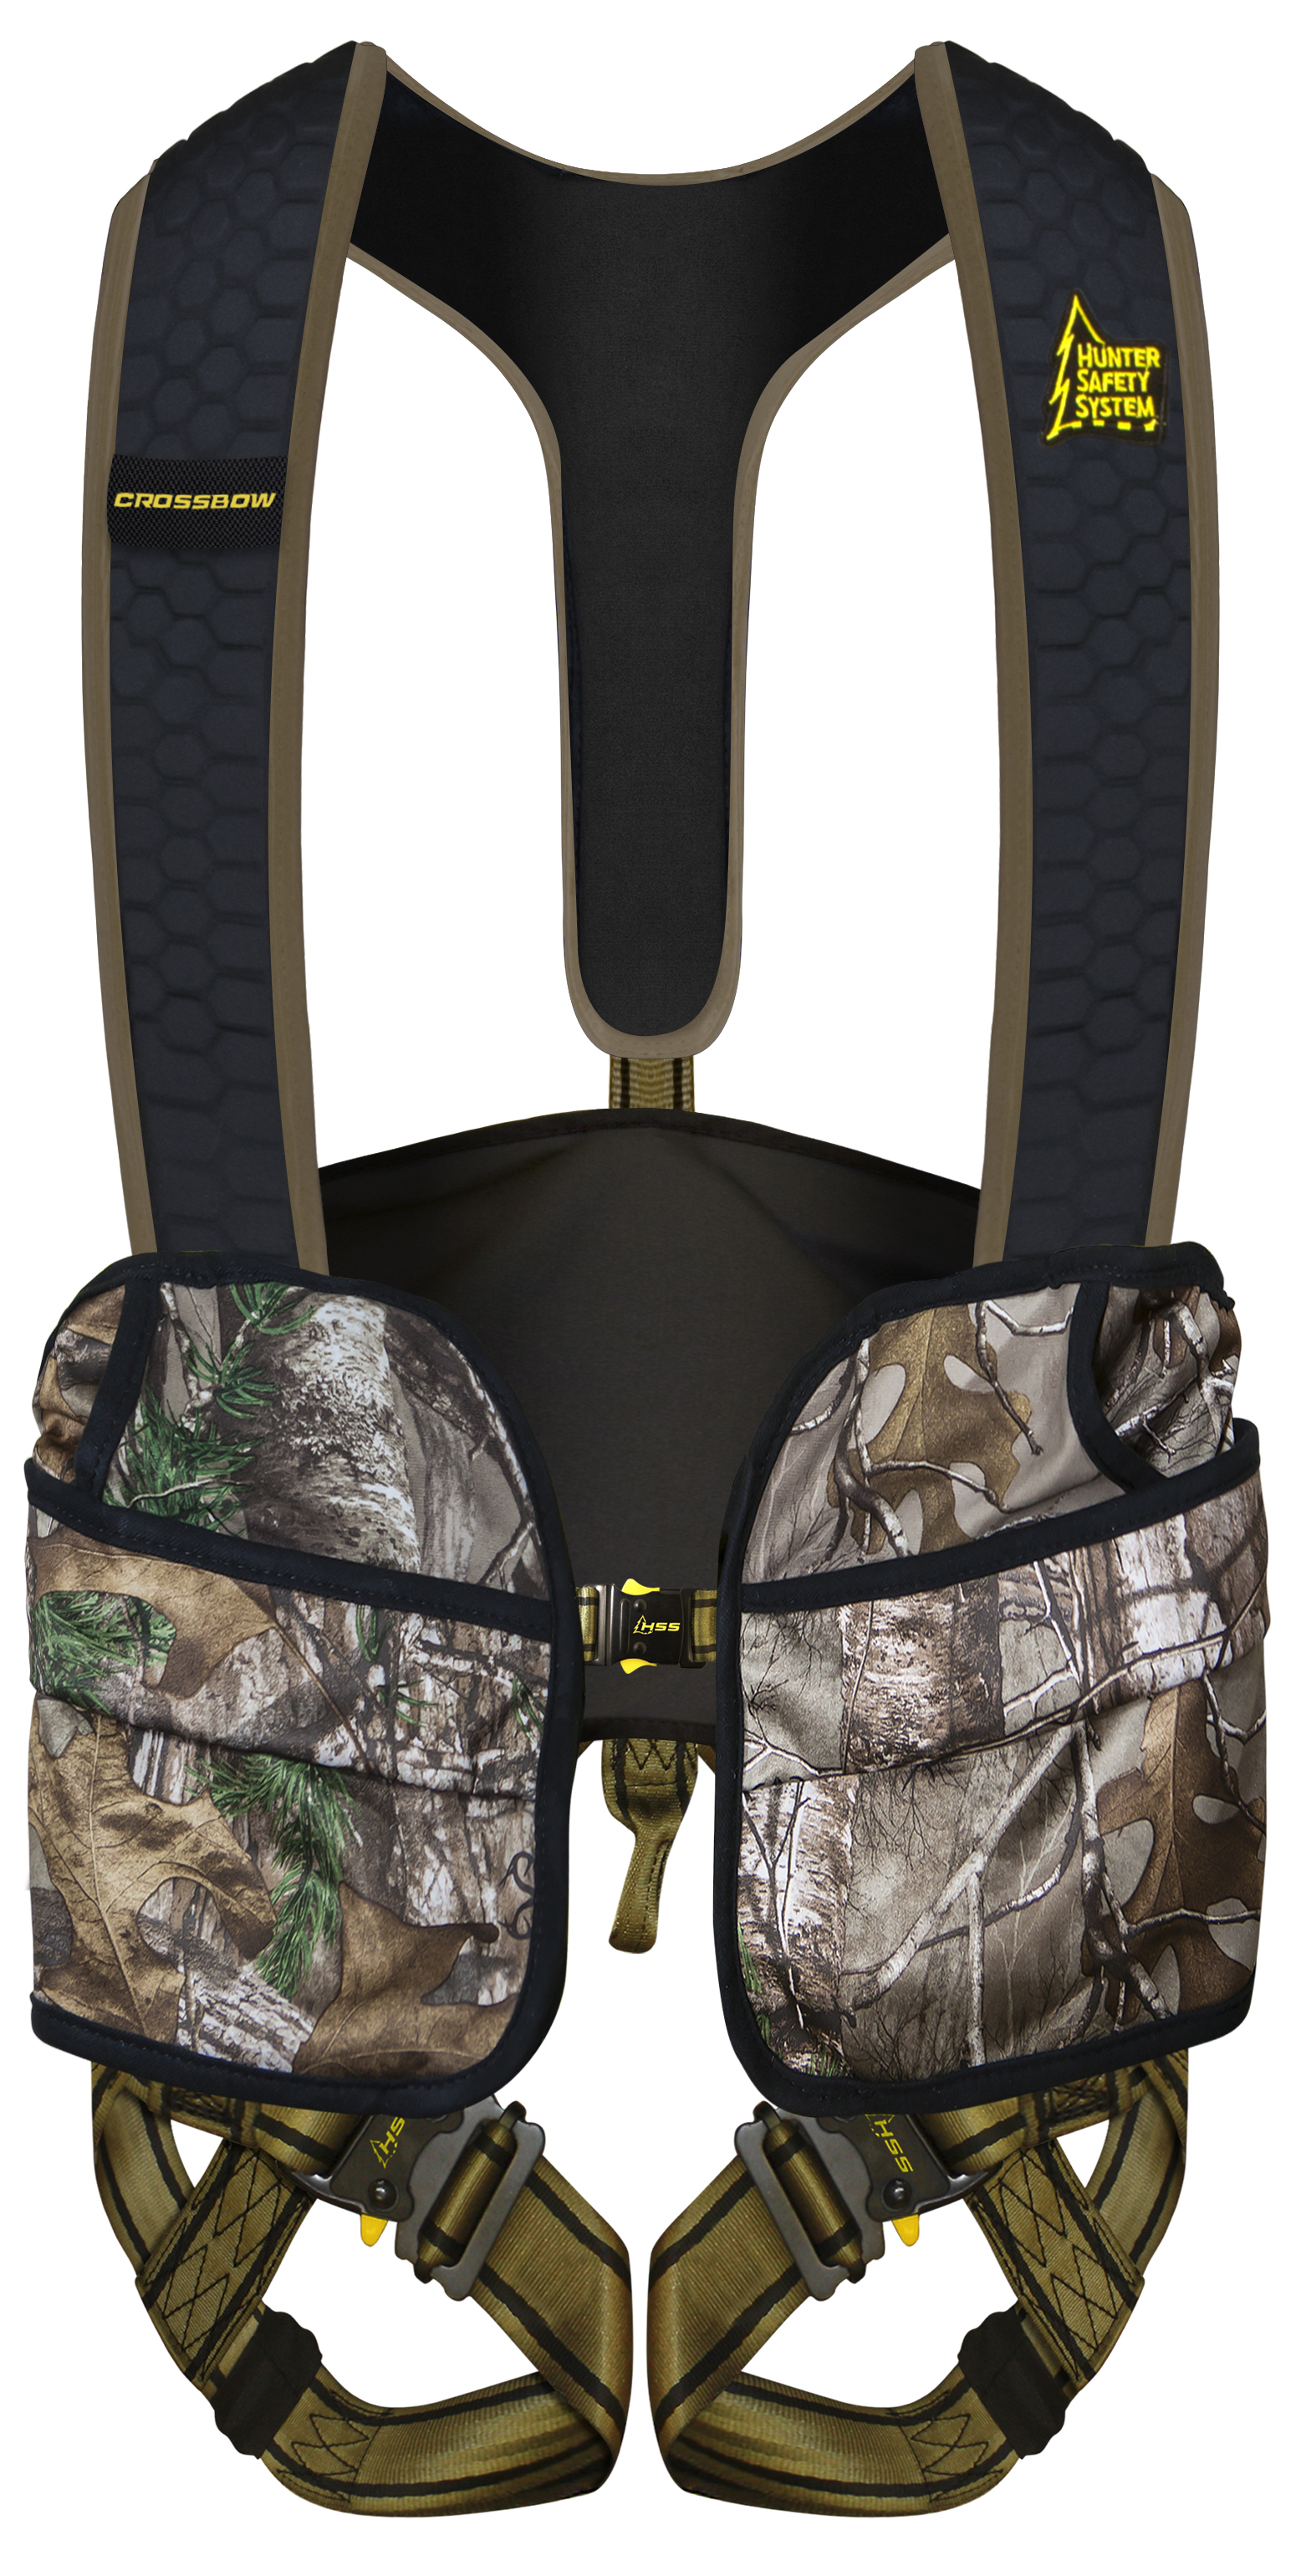 Hot Gear Safety Harness Specifically Designed For